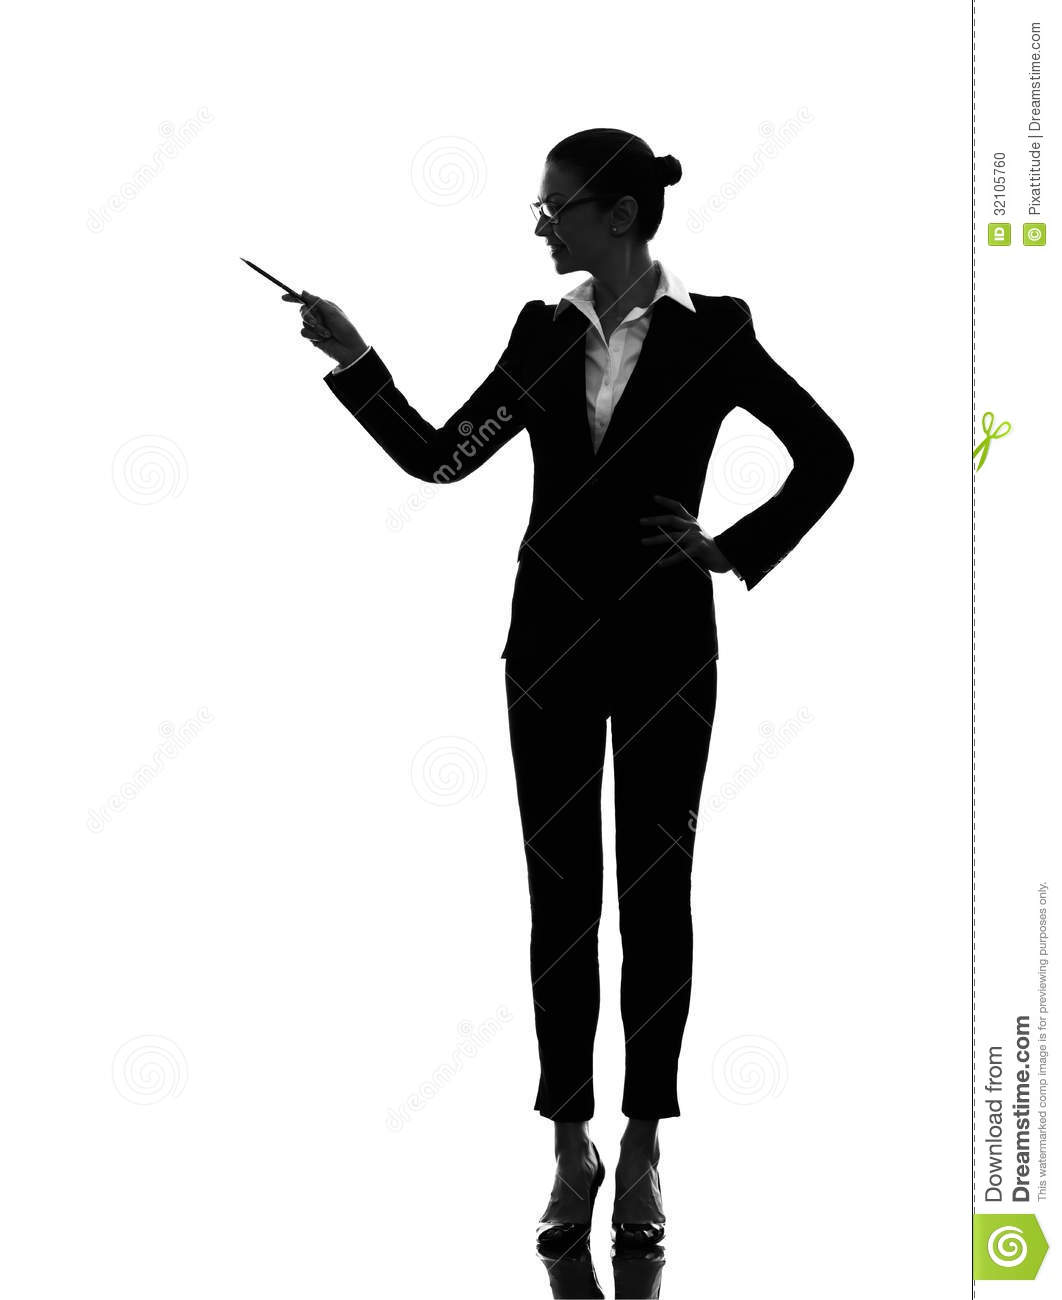 Business Woman Pointing Showing Silhouette Stock Photo - Image ...